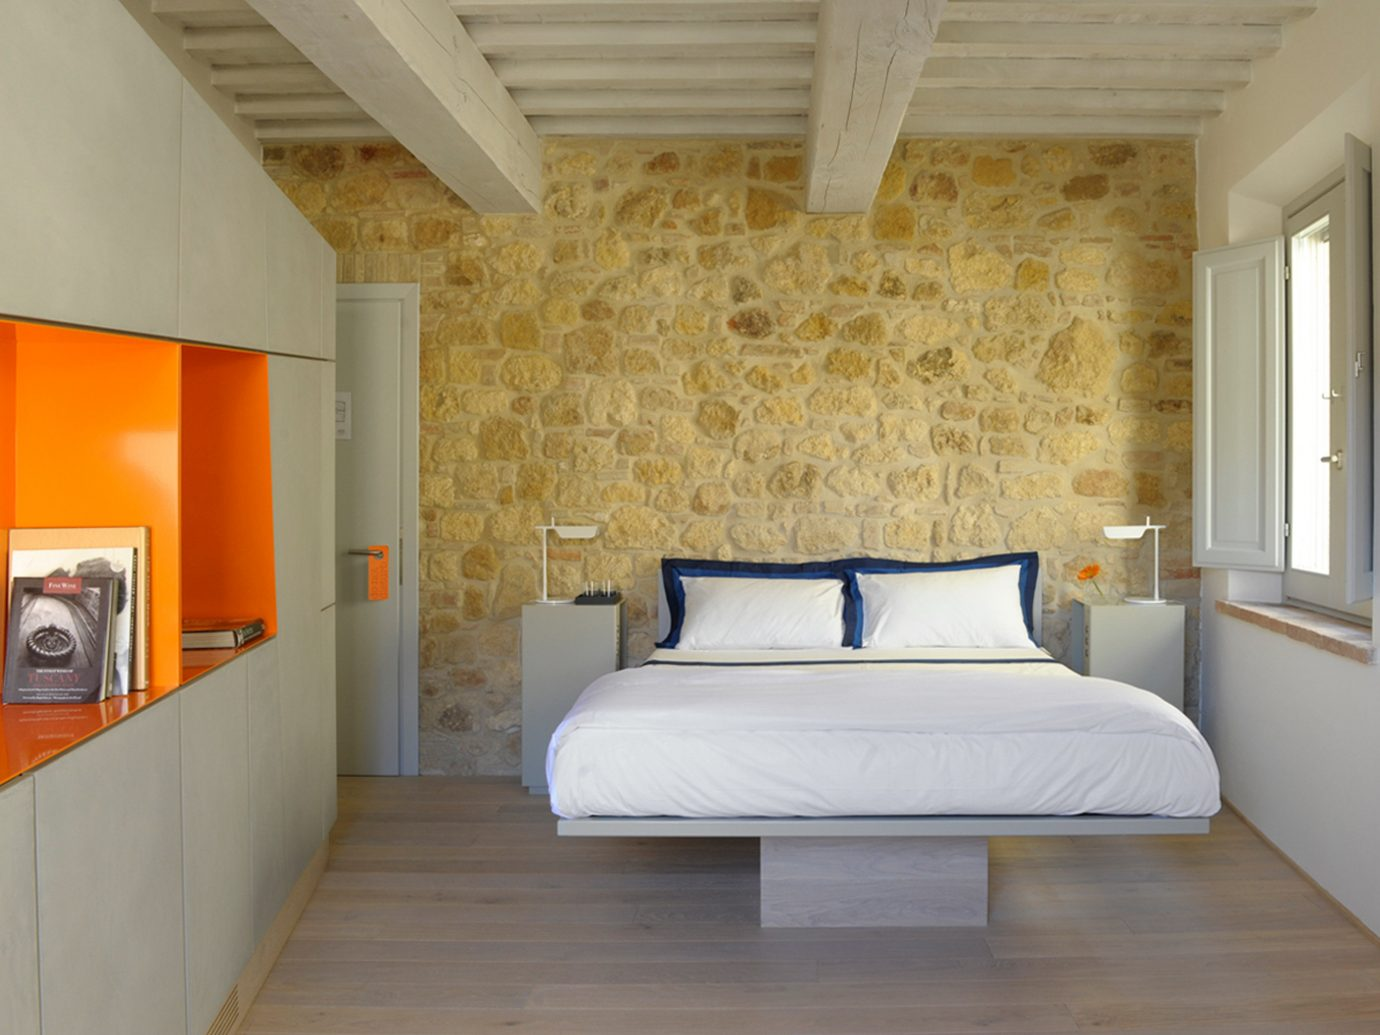 Bedroom Country Italy Modern Suite Trip Ideas indoor floor wall room property ceiling estate interior design living room hardwood real estate cottage home Design apartment wood